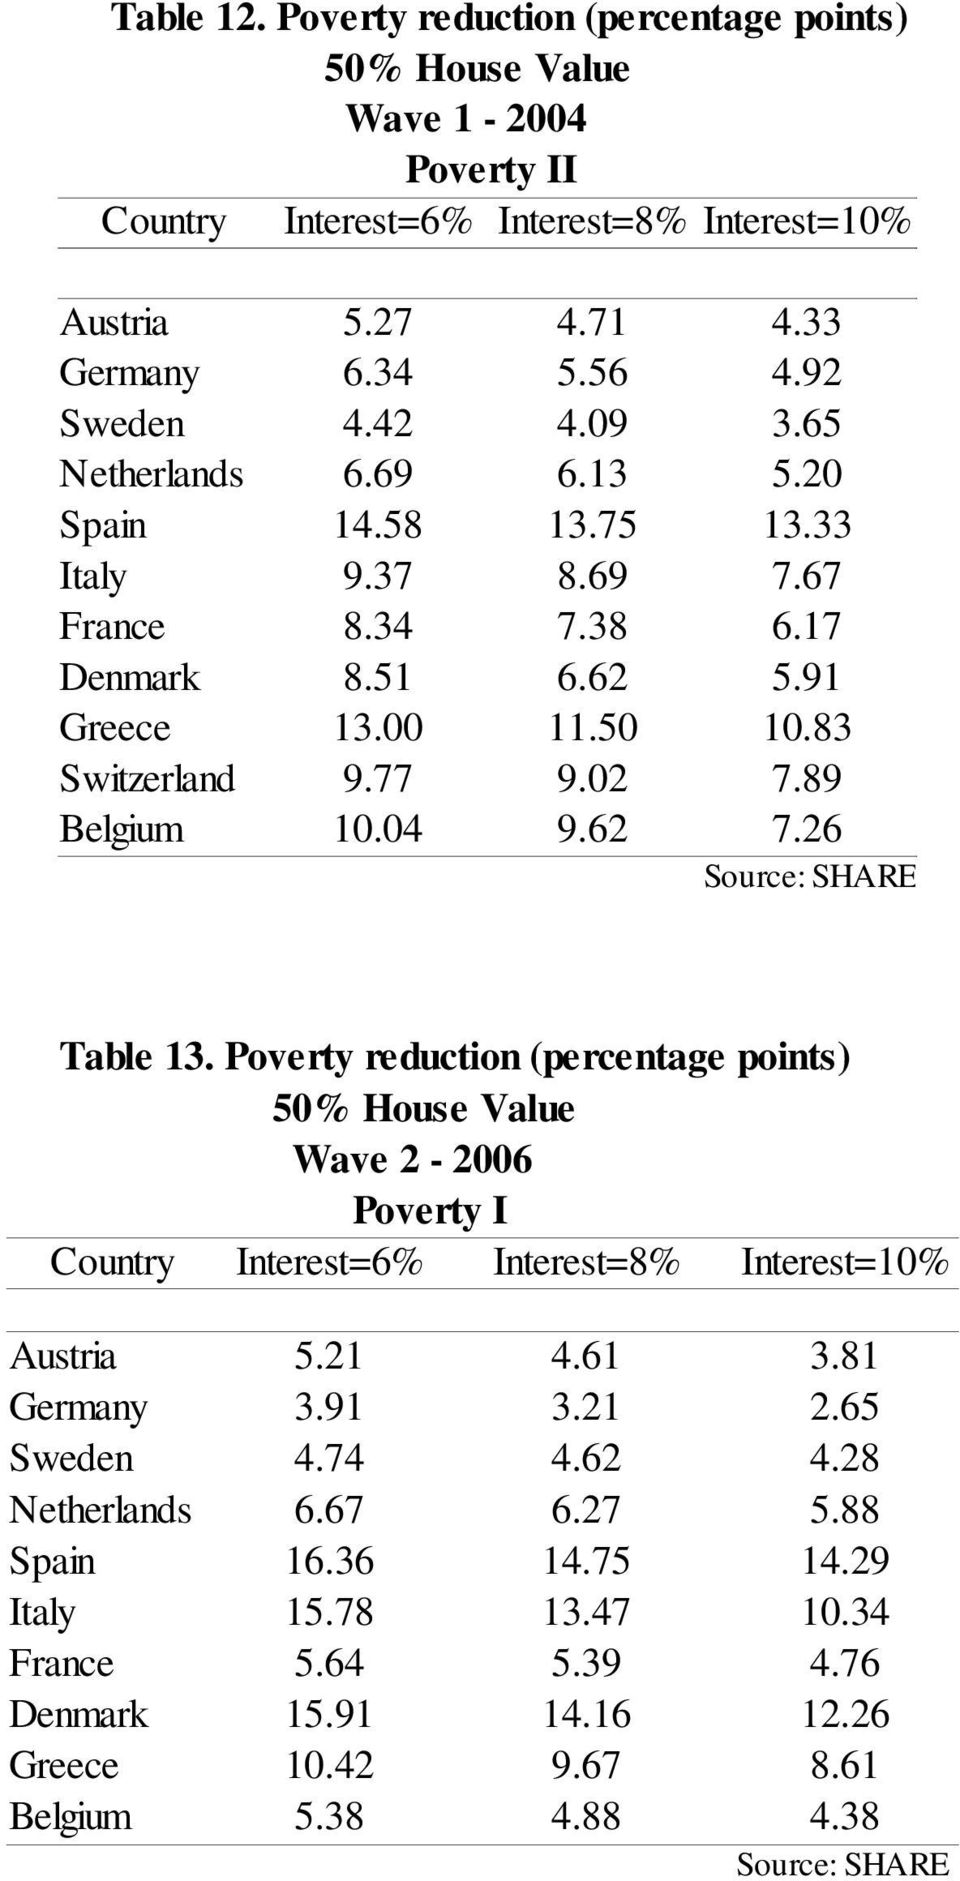 89 Belgium 10.04 9.62 7.26 Table 13. Poverty reduction (percentage points) 50% House Value Wave 2-2006 Poverty I Country Interest=6% Interest=8% Interest=10% Austria 5.21 4.61 3.